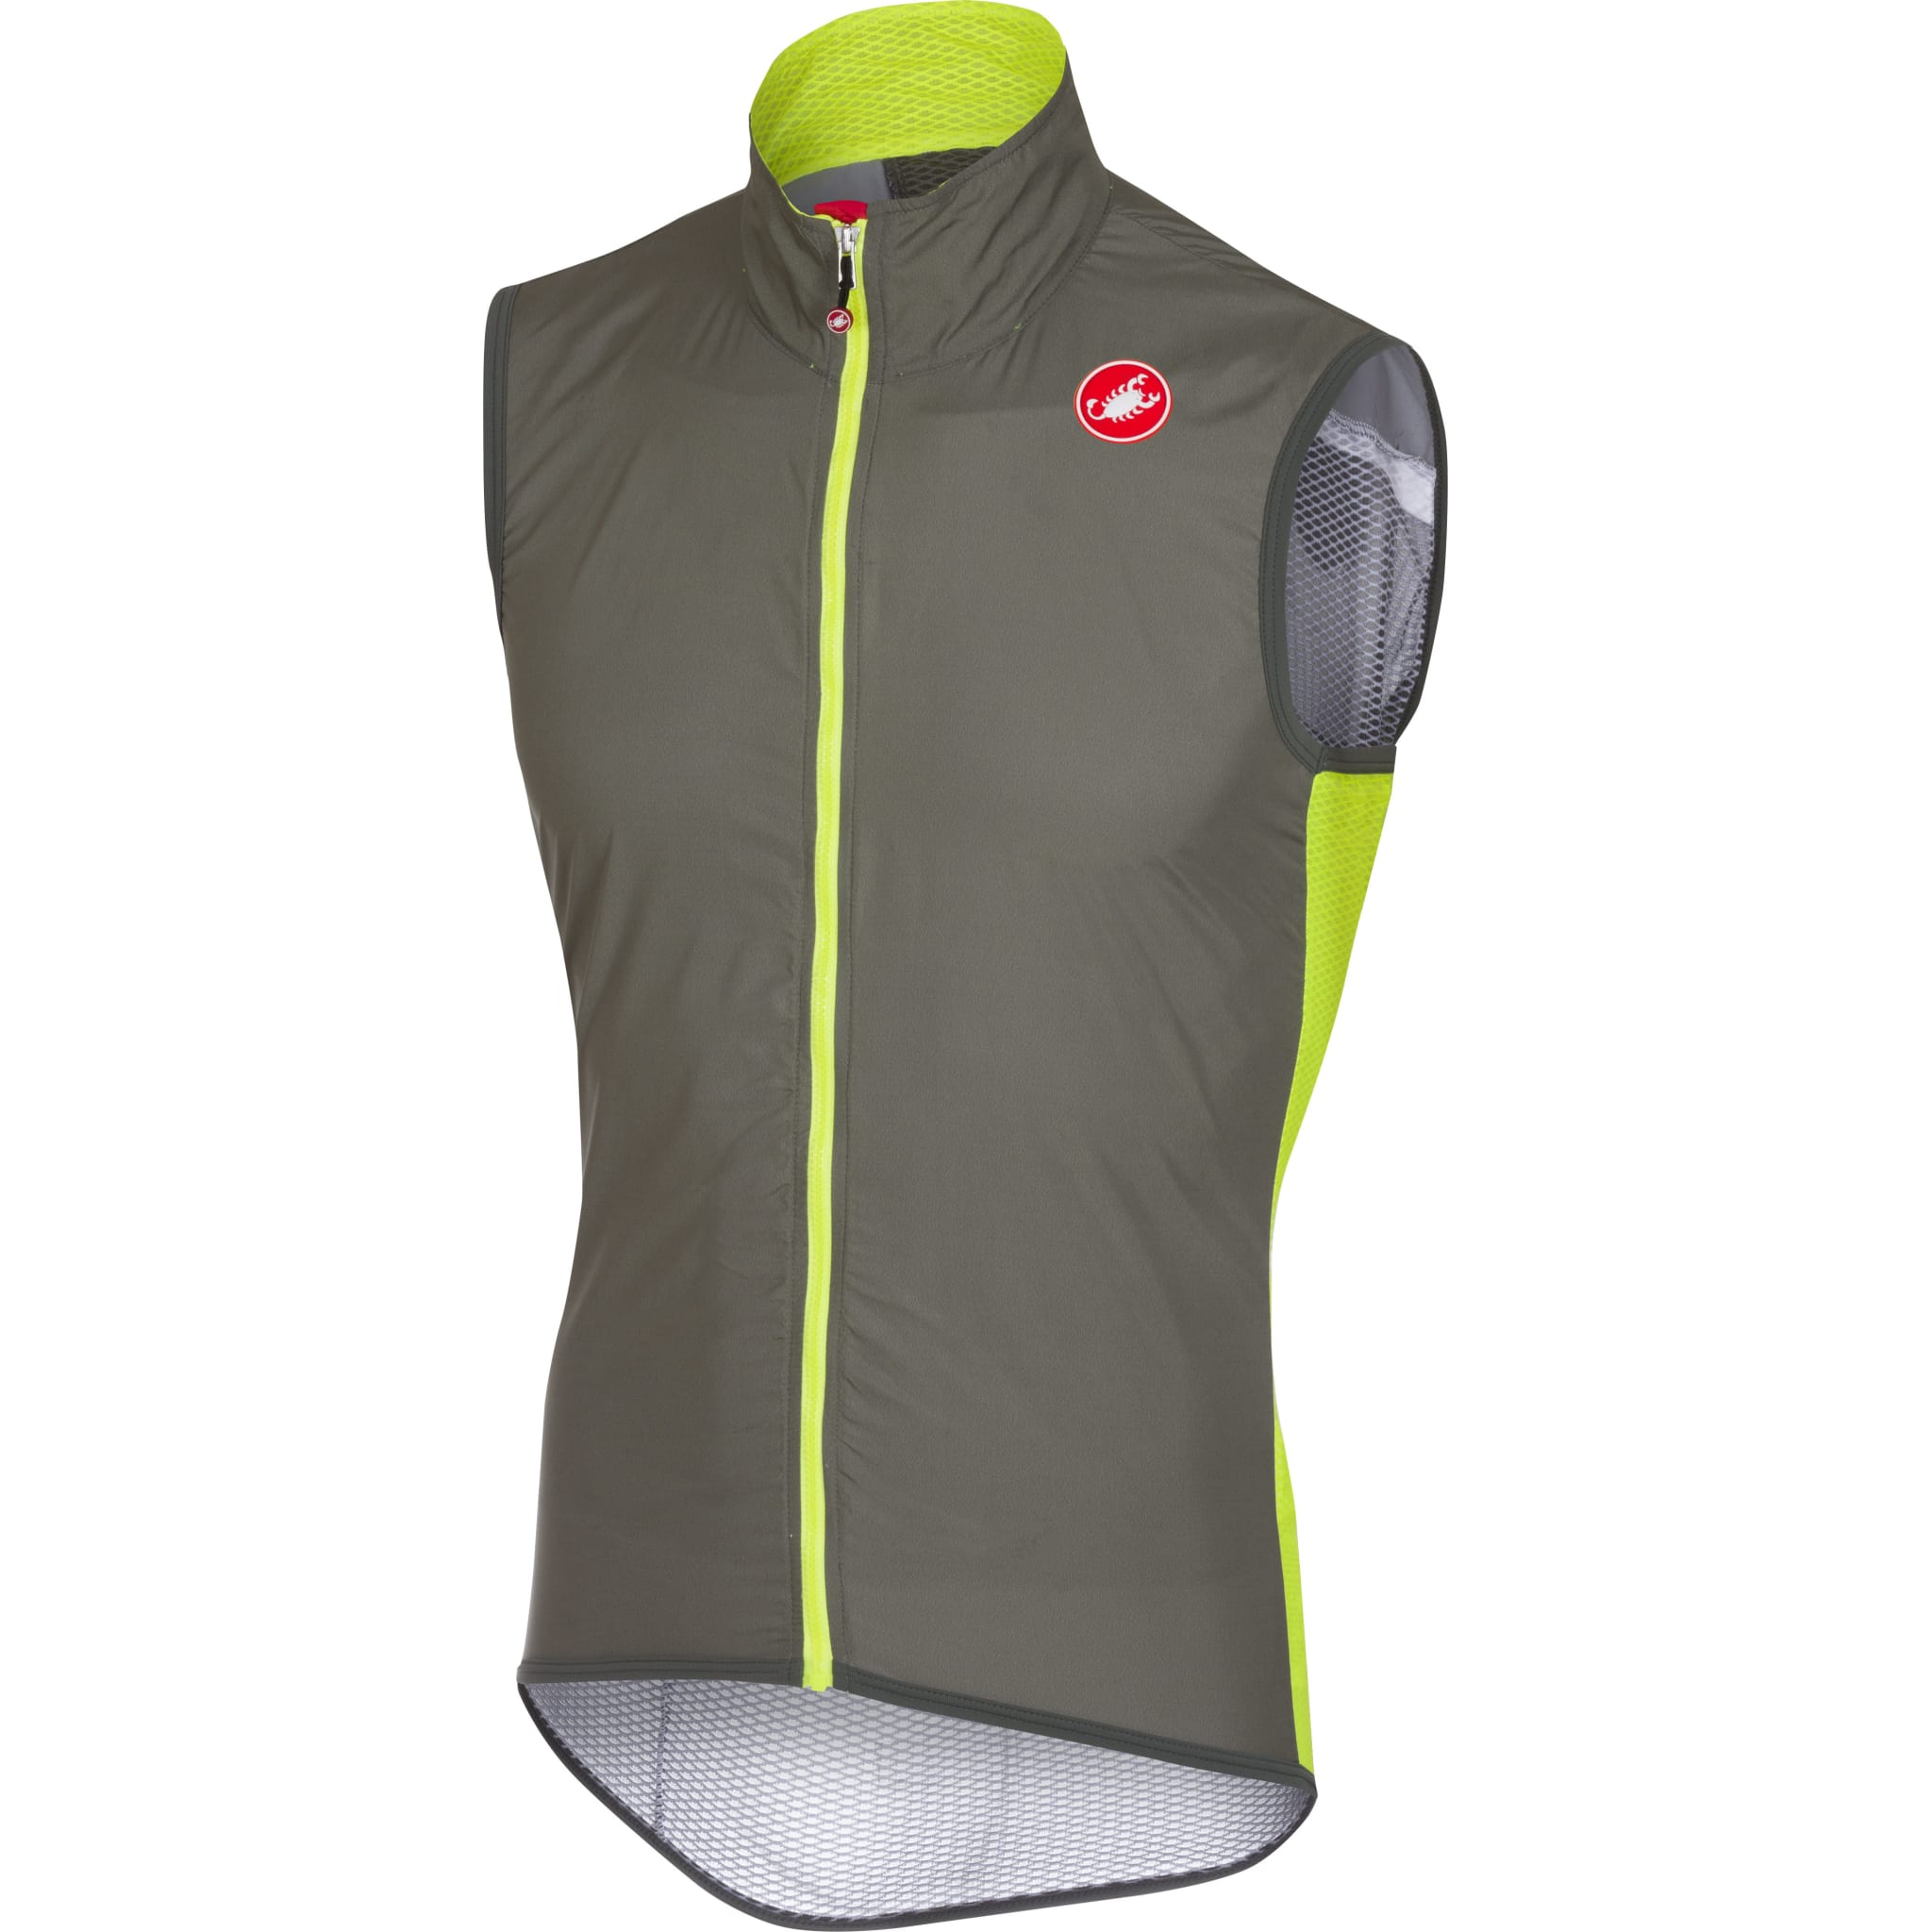 Pro Light Wind Vest